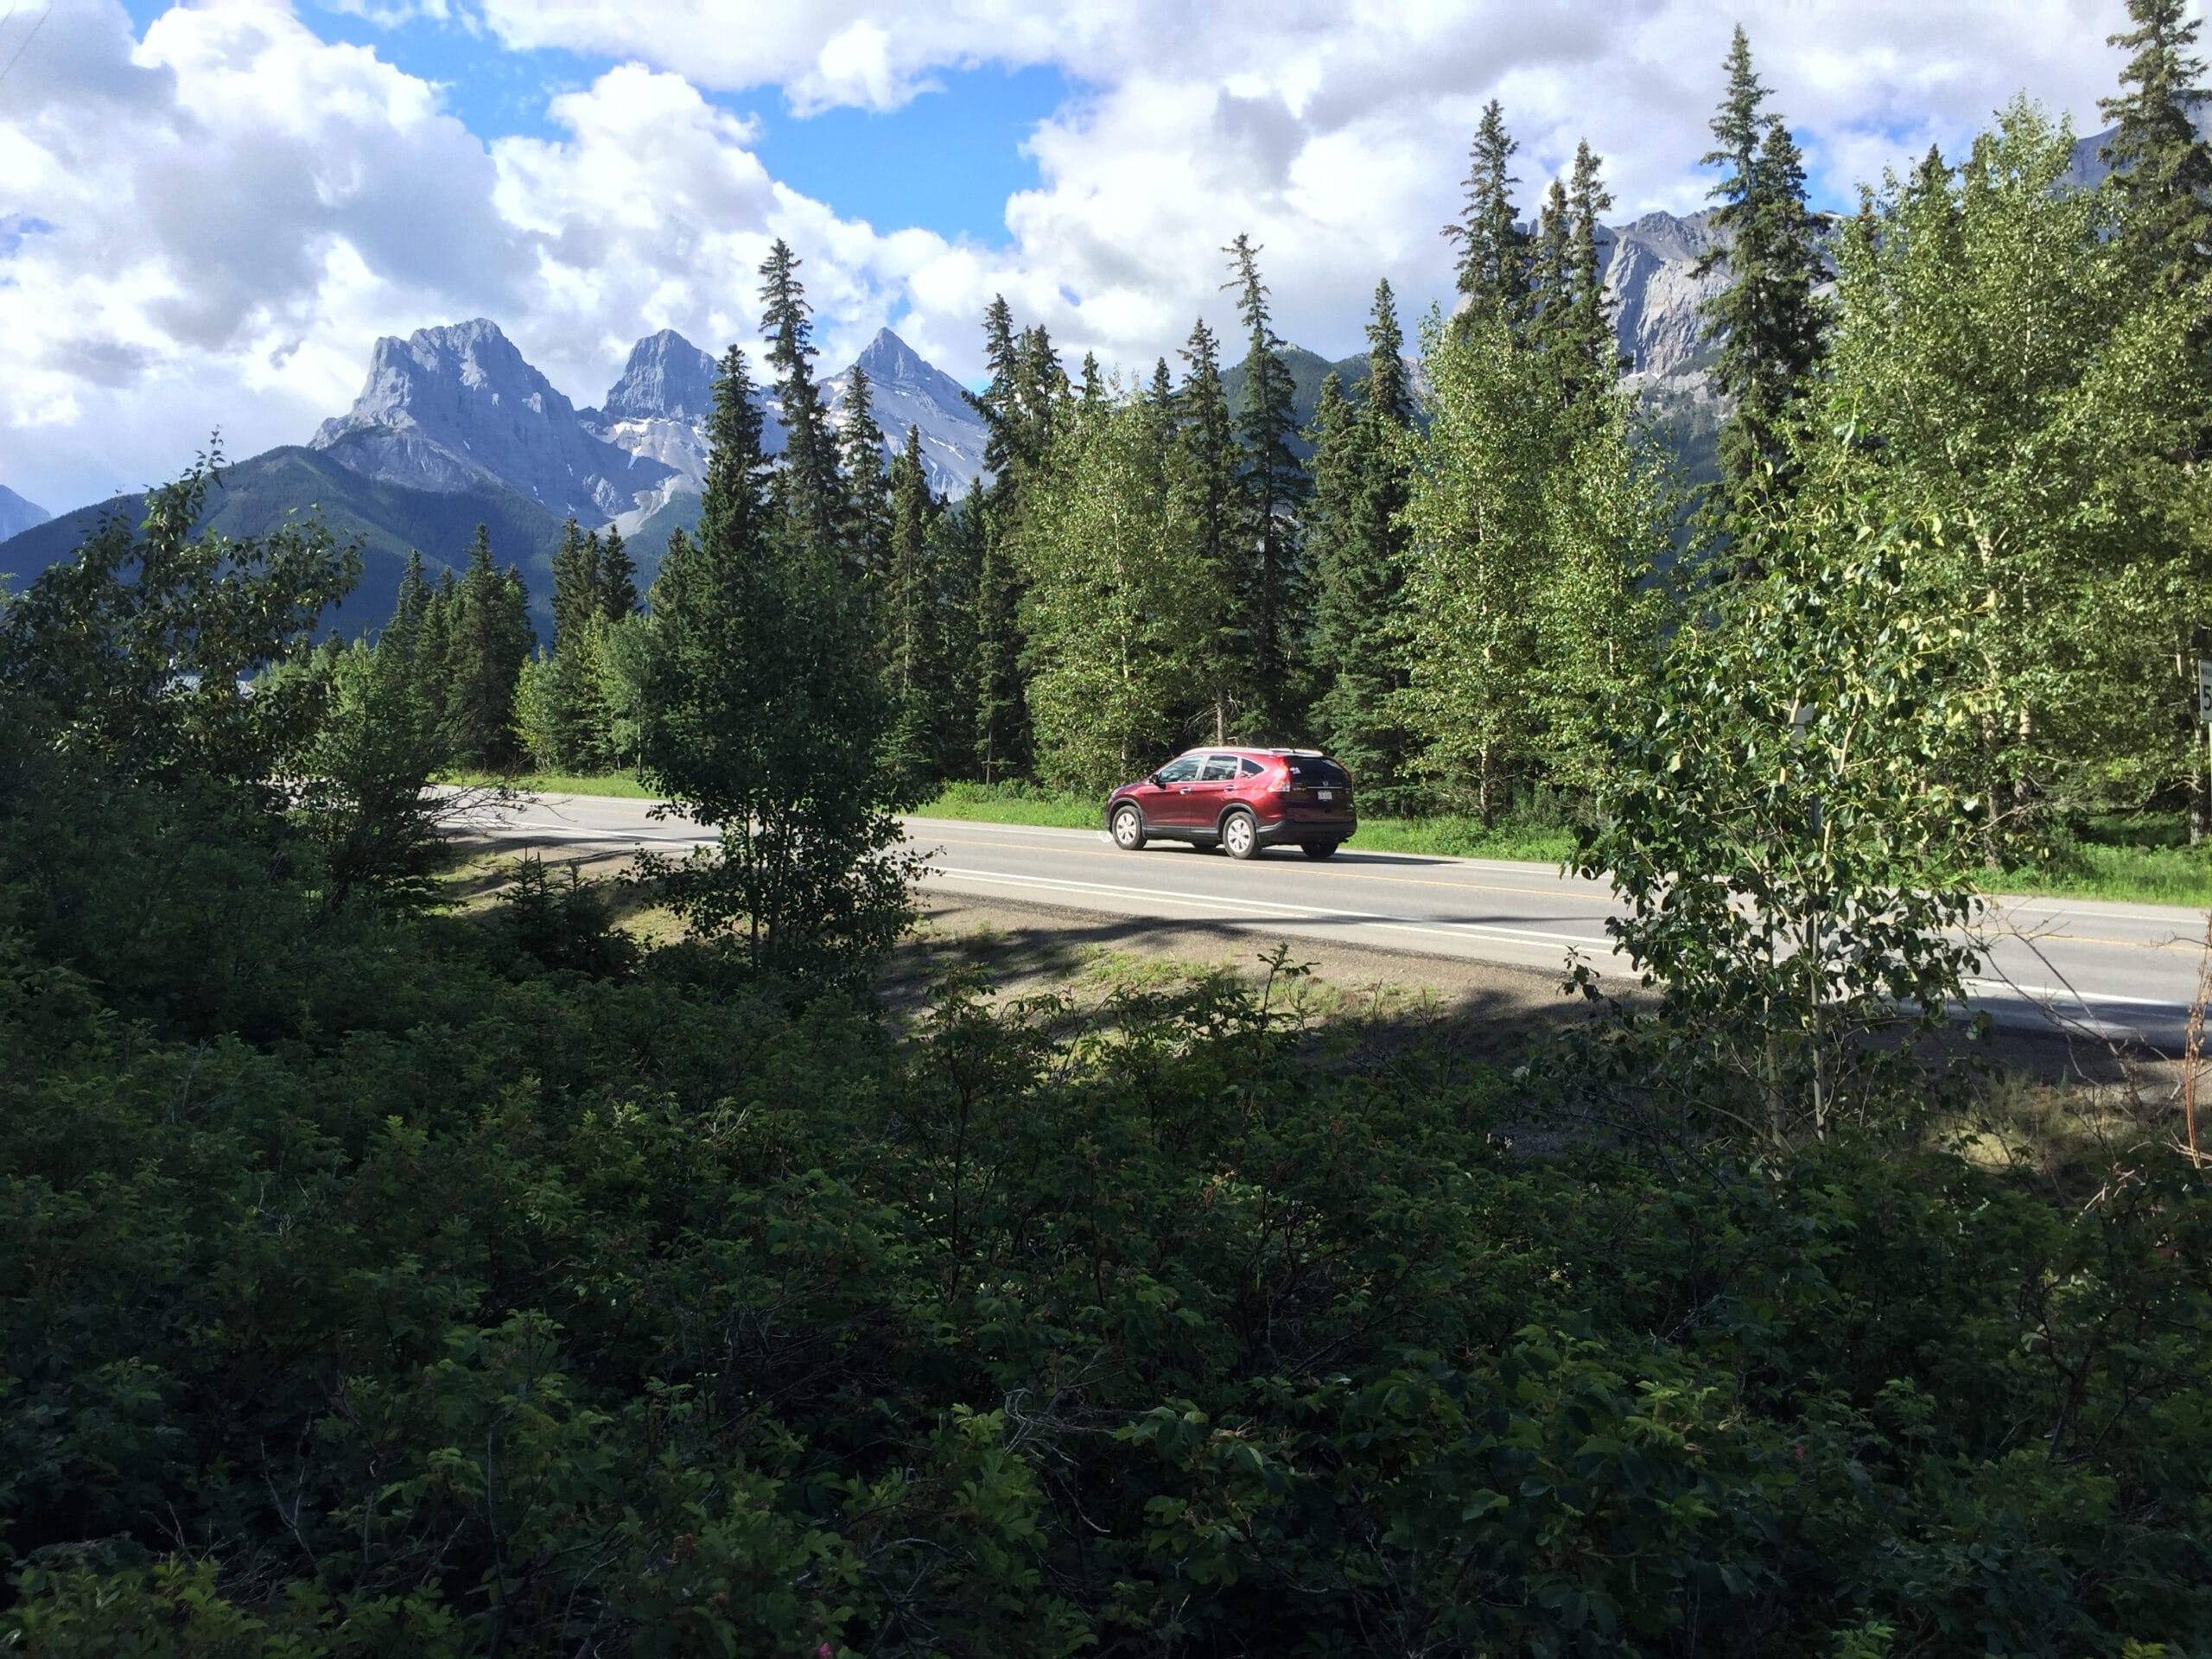 A small red car drives  through Canmore, Alberta